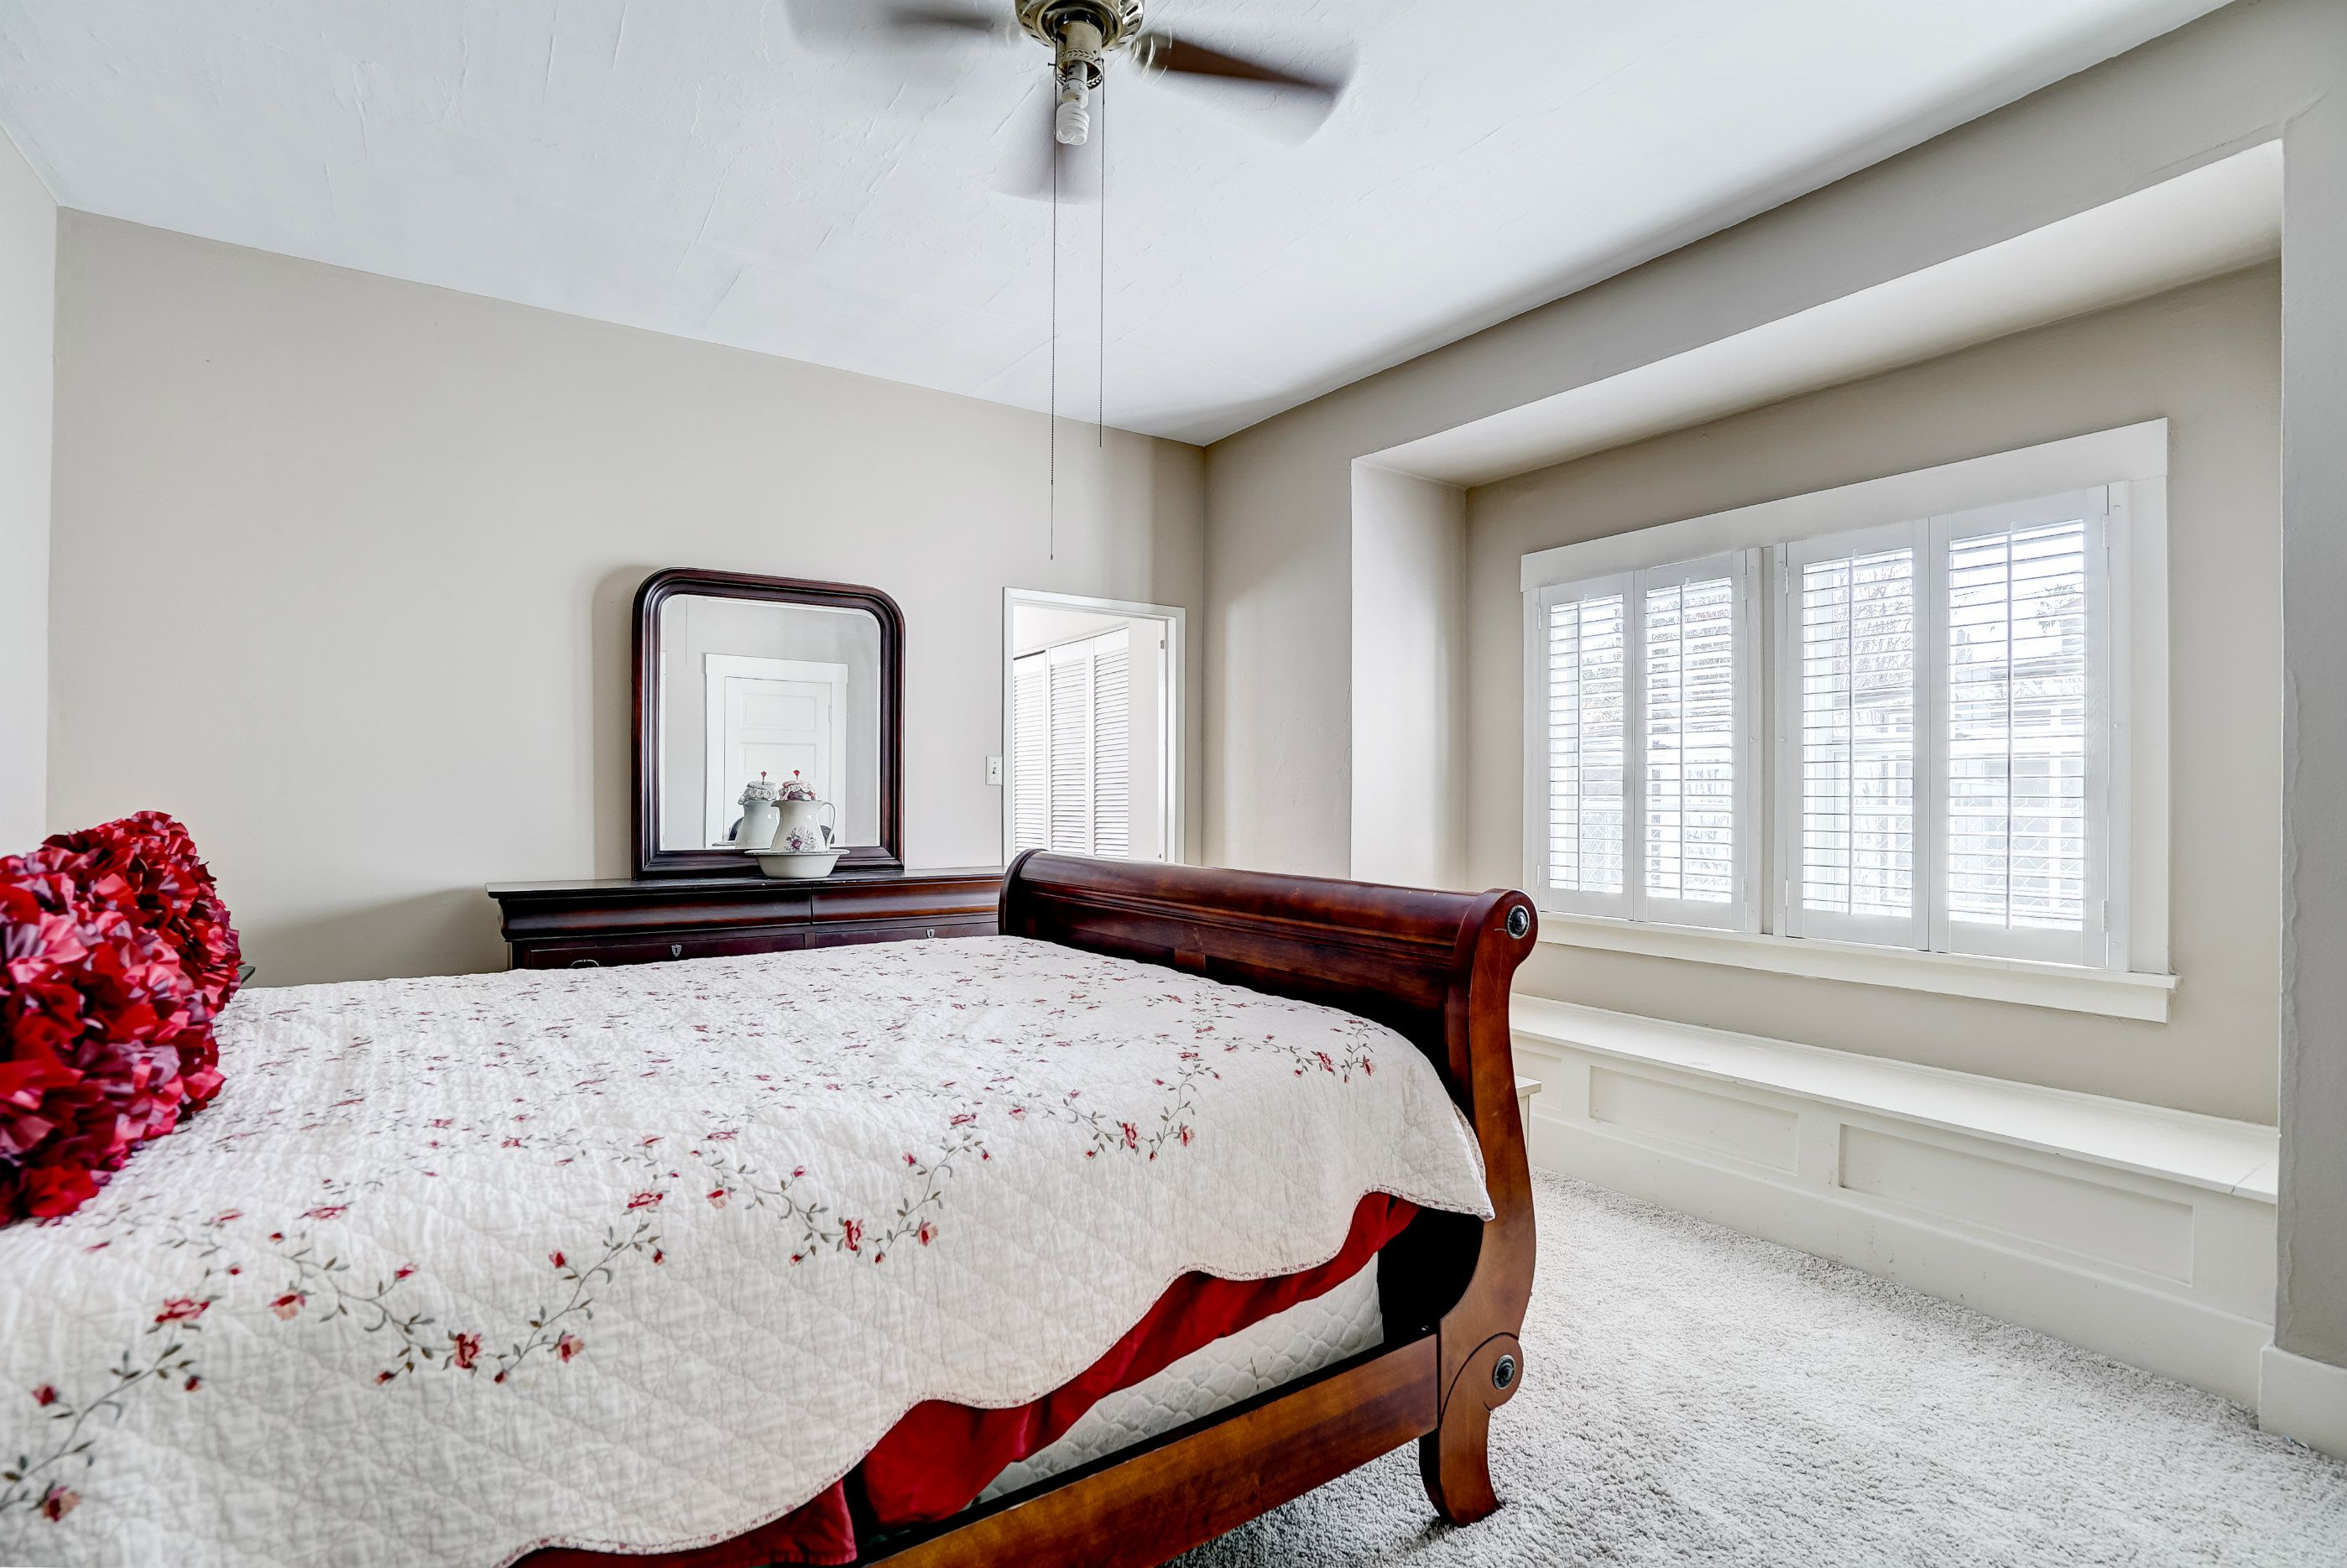 Alternate view of master suite with very large window seat with hidden storage.